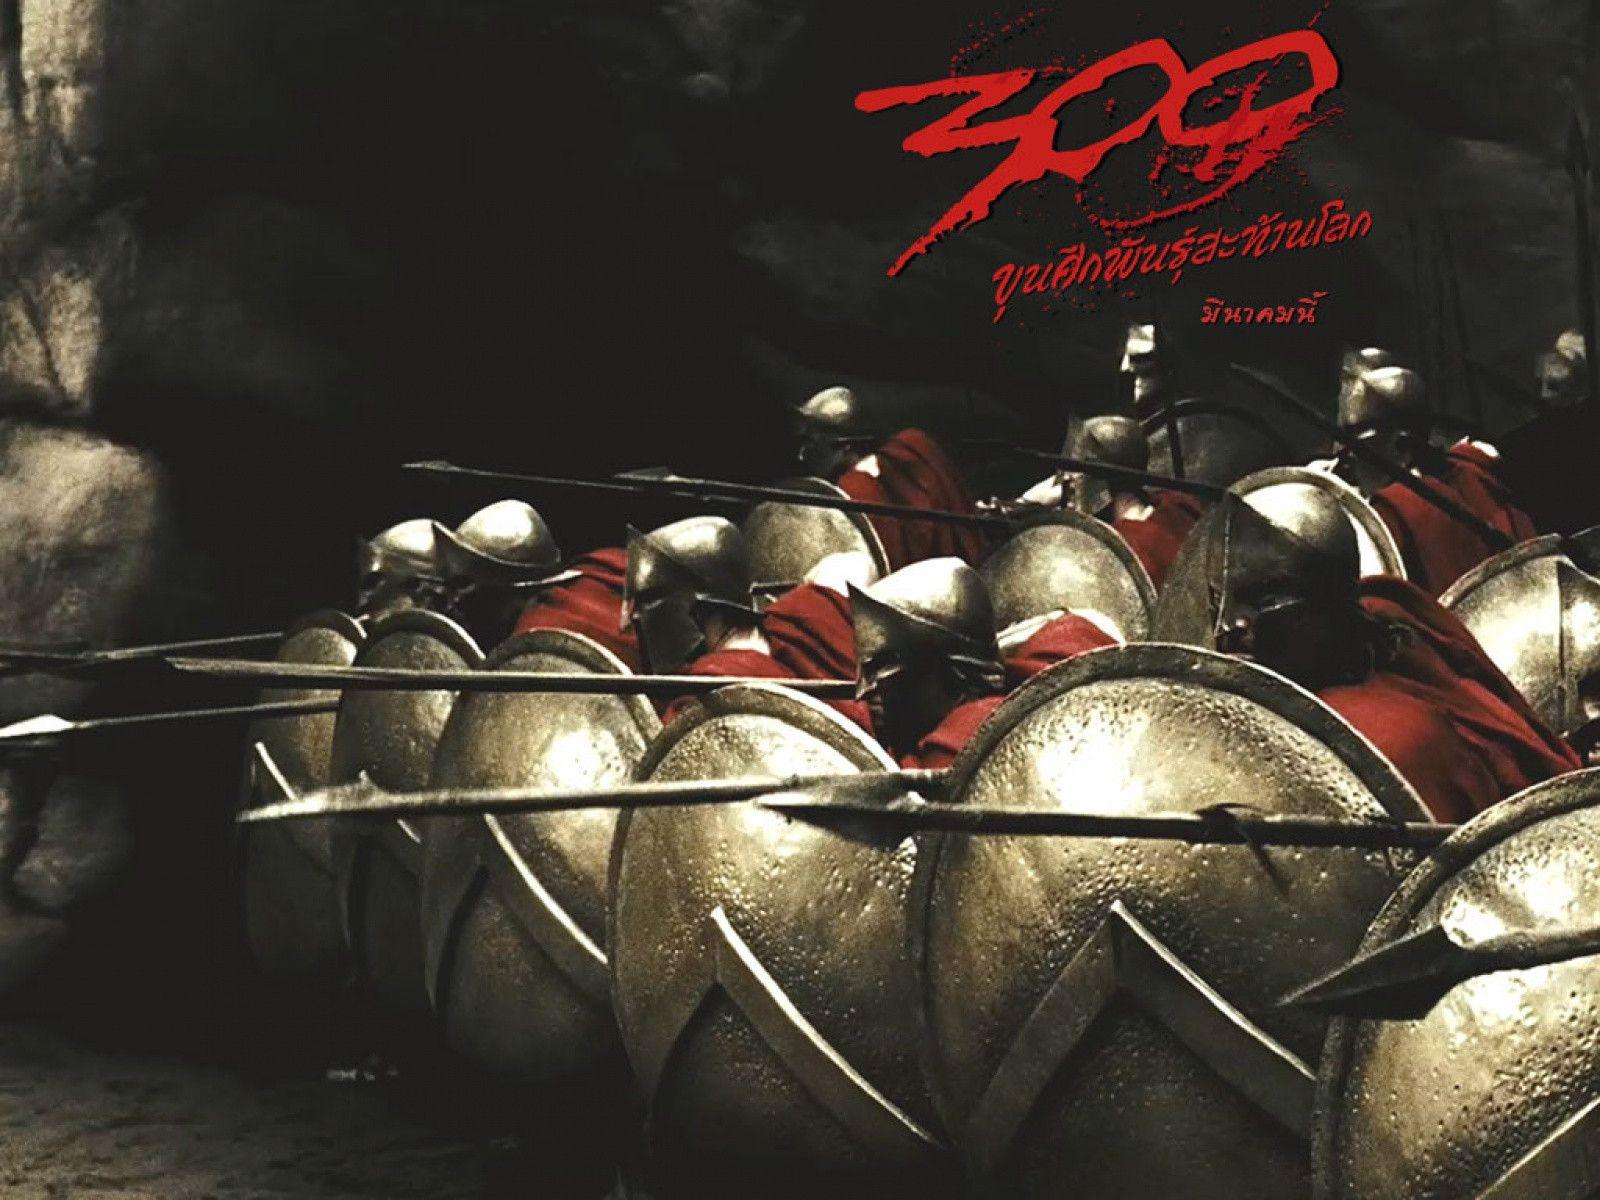 Related Pictures 300 Spartans Wallpapers 1280x960 434849 Lowrider